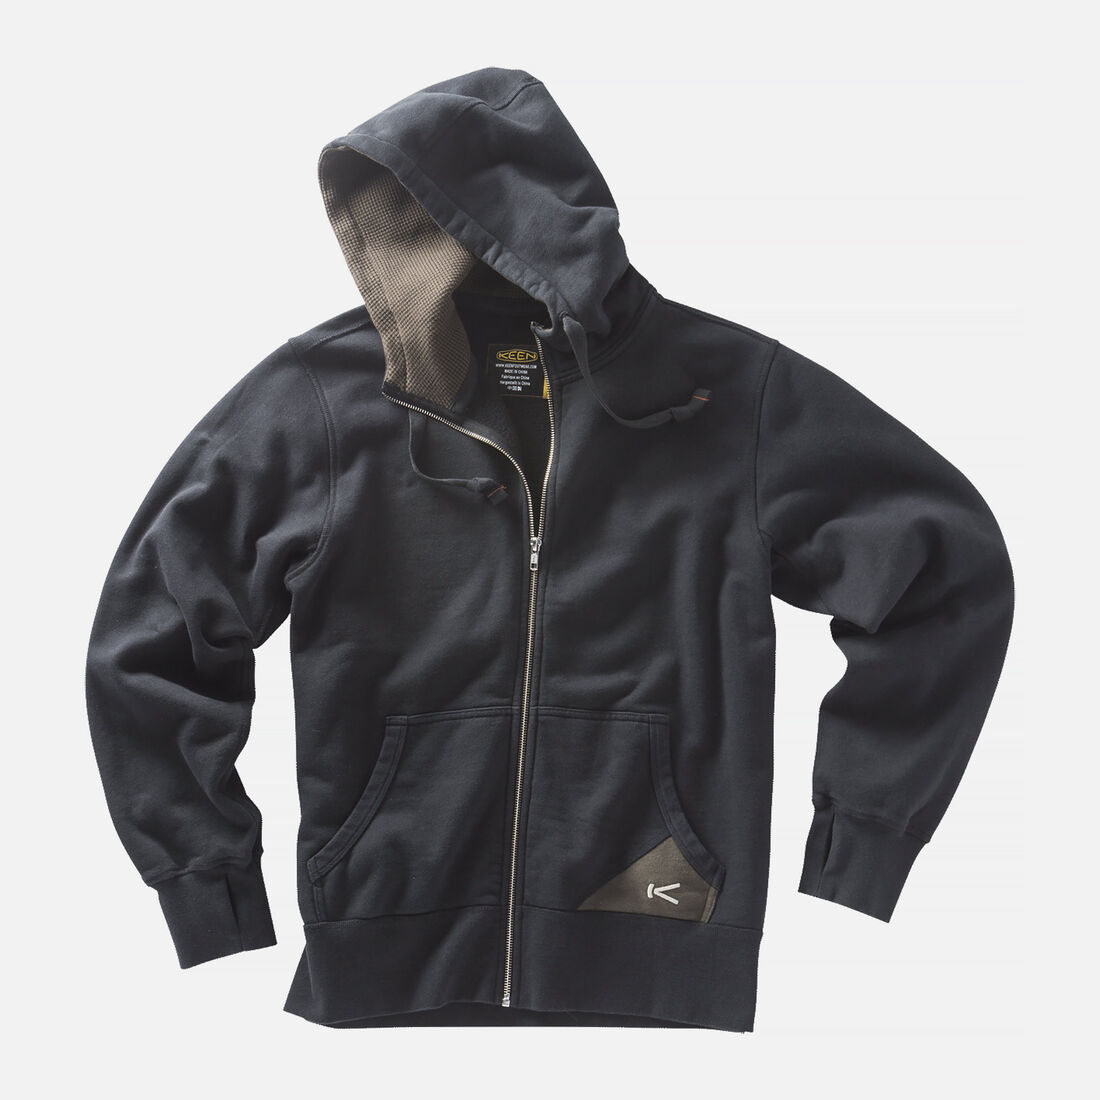 Men's Bridgeport Hoodie in Black/Black Olive - large view.